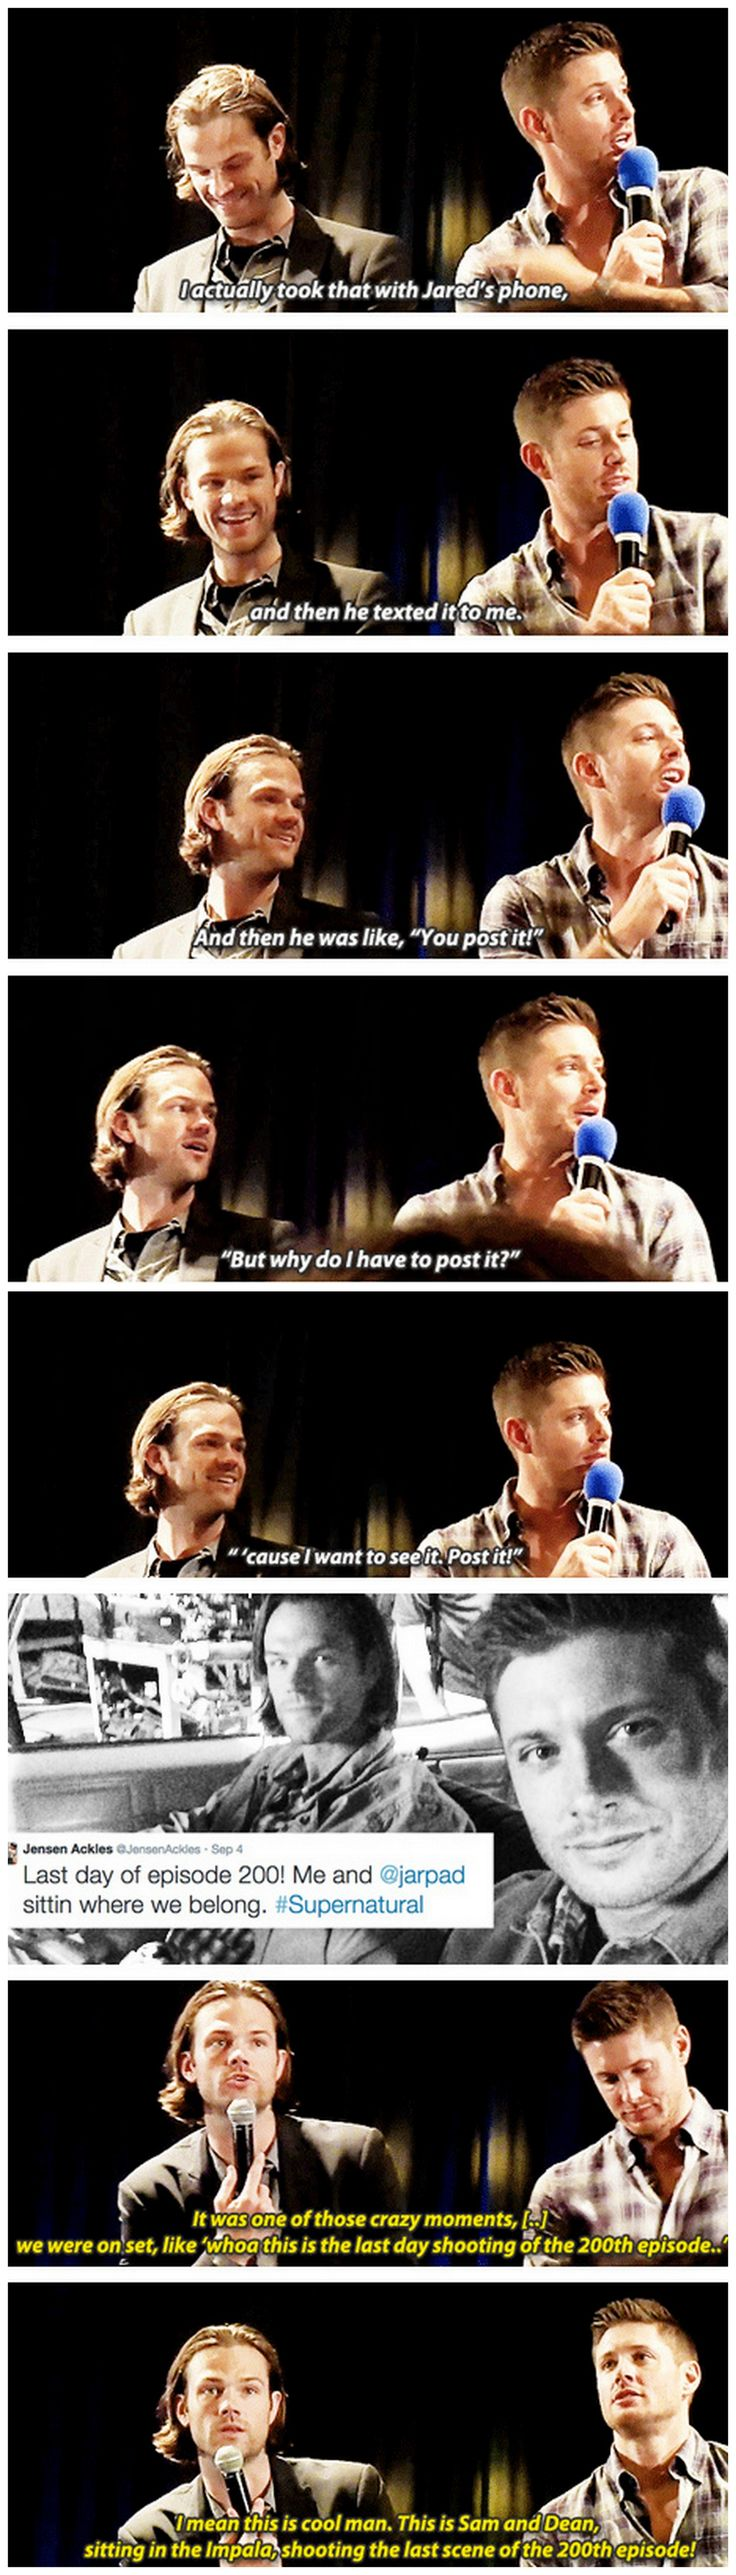 [gifset] Jensen and Jared on Jensen tweeting last day of the 200th episode. #NJCon14 #Jensen #Jared